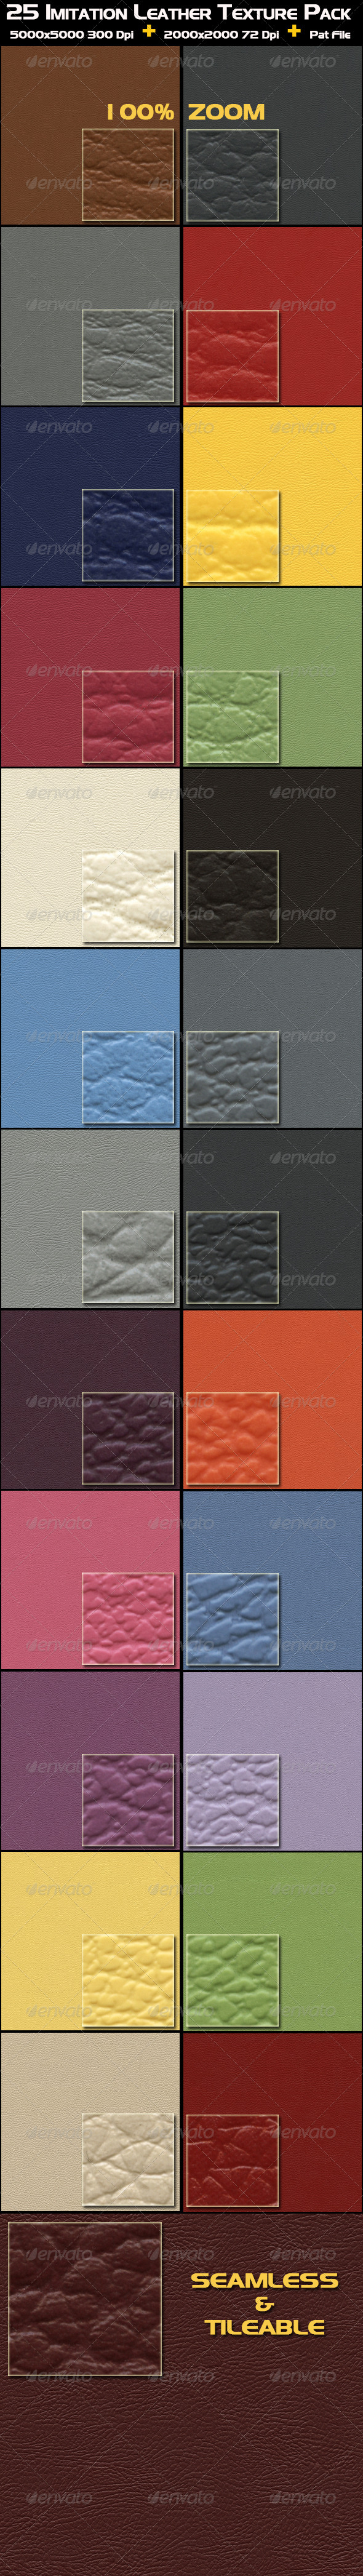 25 Imitation Leather Texture Pack - Fabric Textures